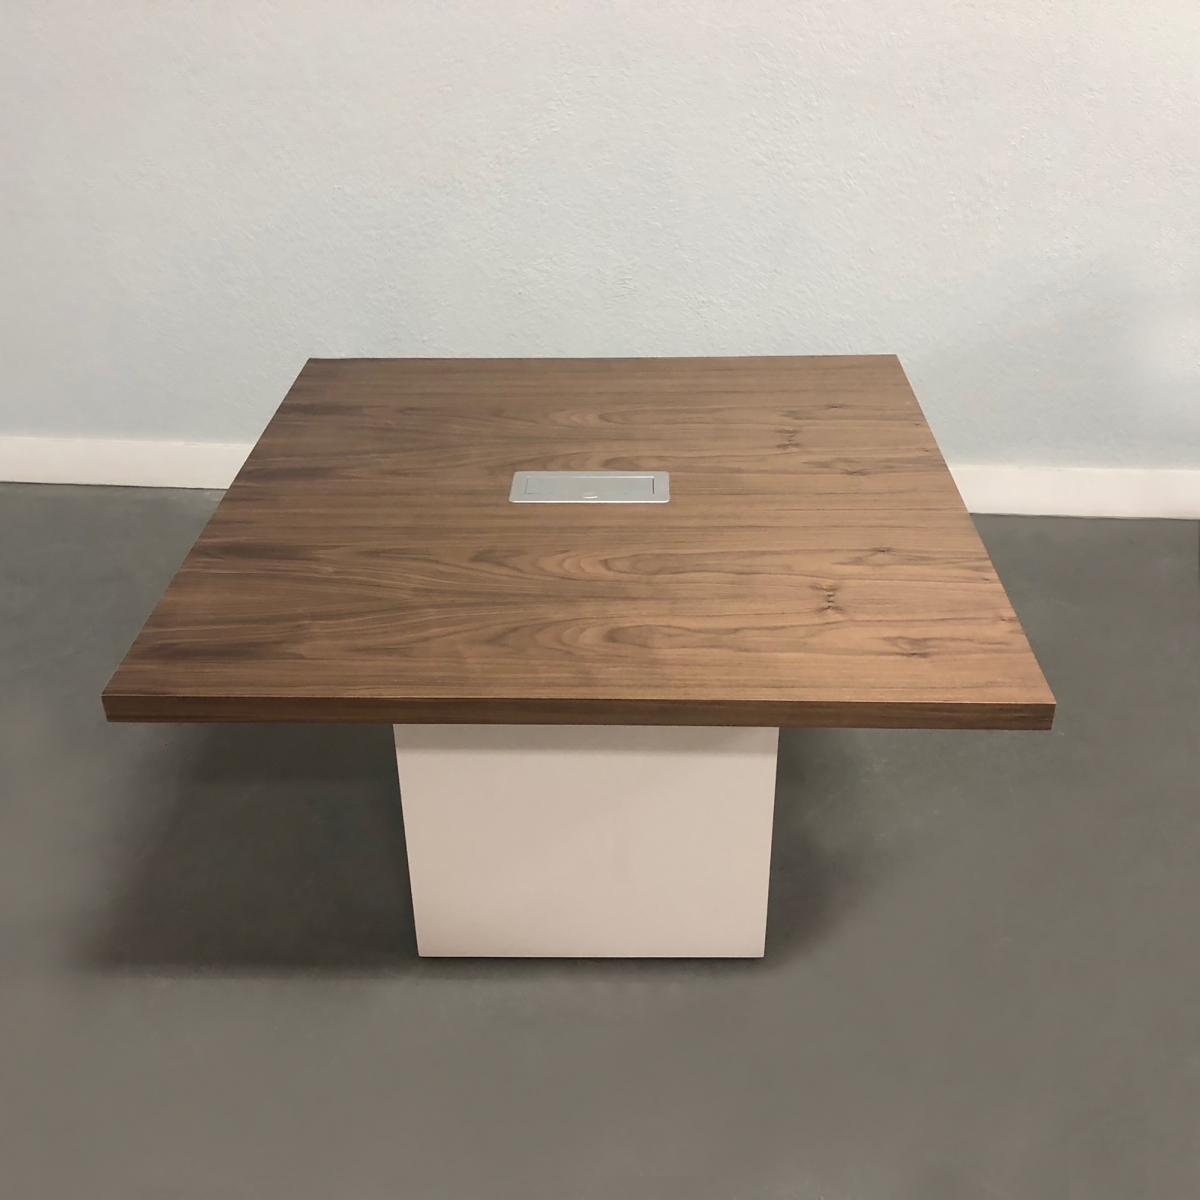 Axis Square Meeting Table in Laminate Finish